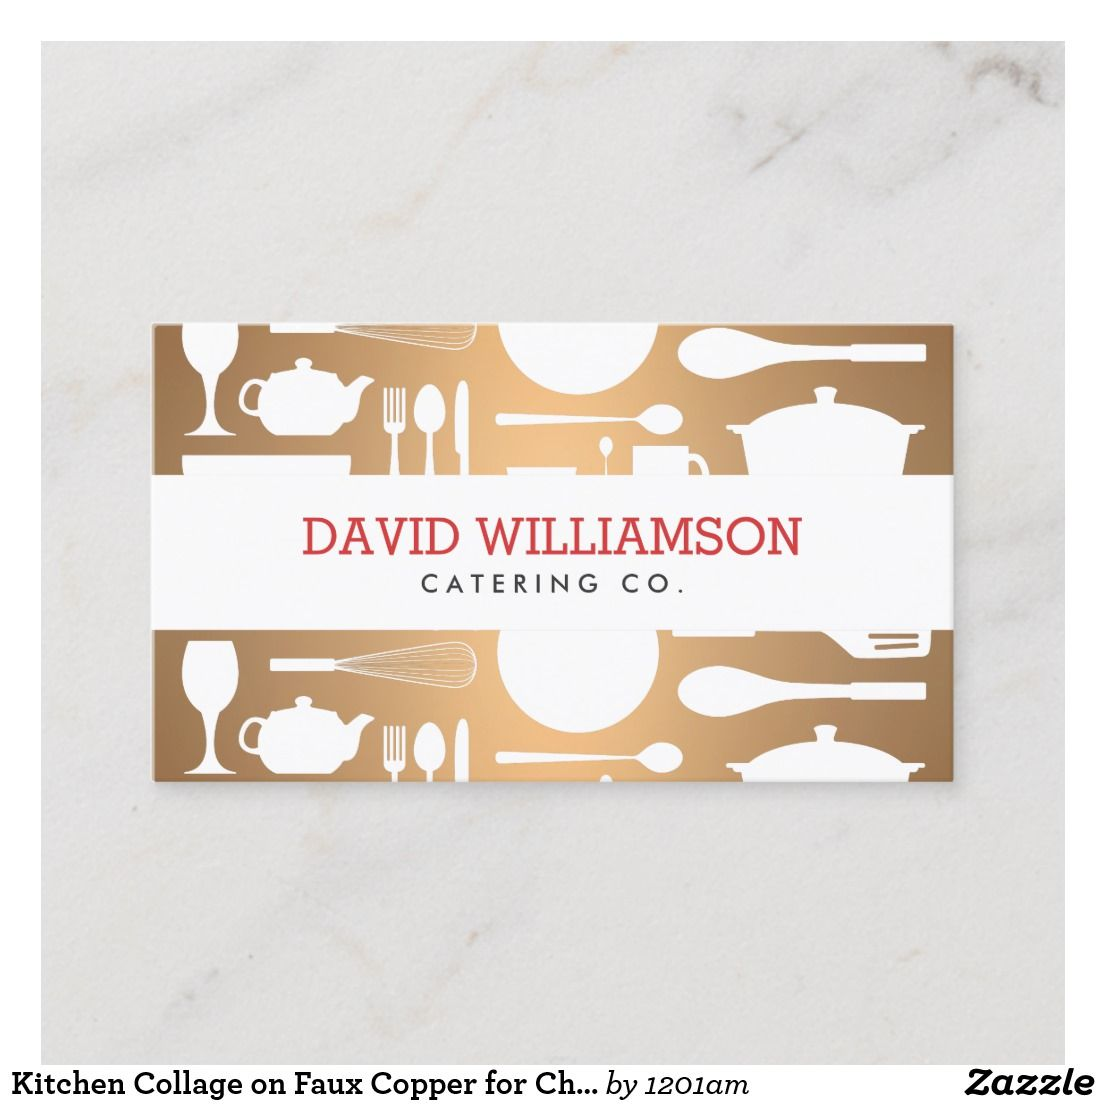 Kitchen Collage On Faux Copper For Chef Catering Business Card Zazzle Com Catering Business Cards Bakery Business Cards Templates Bakery Business Cards